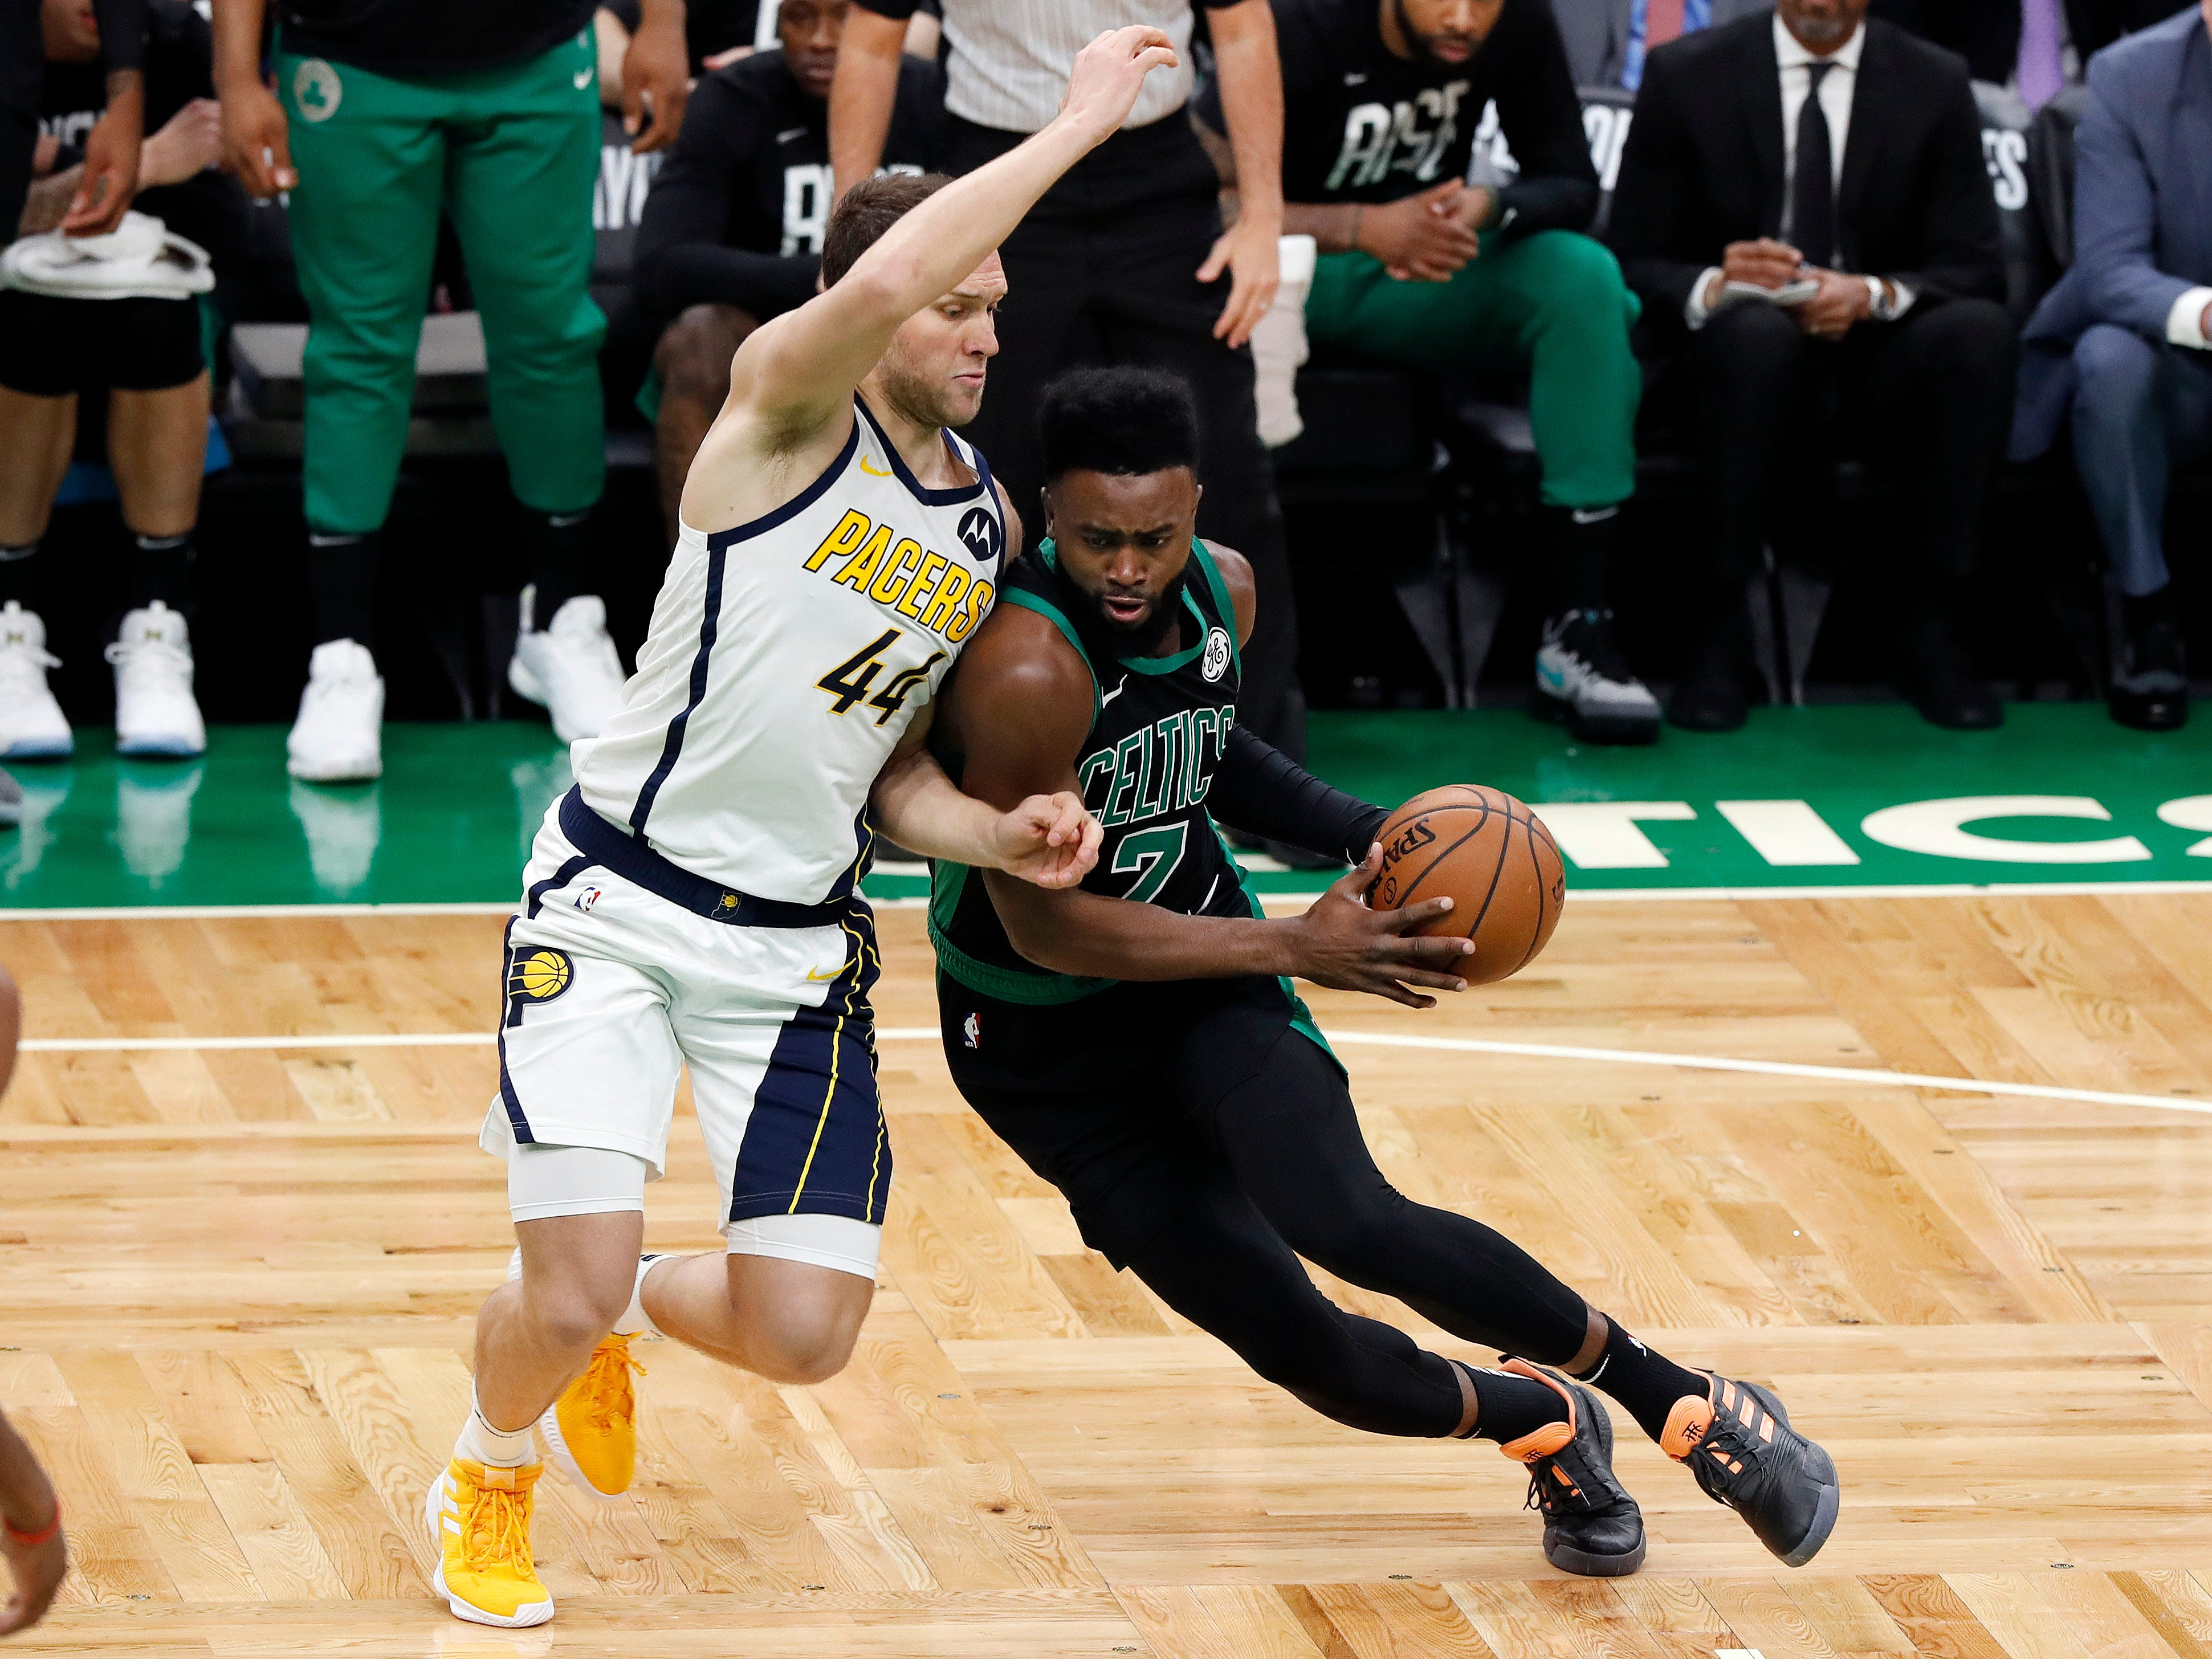 Boston Celtics' Jaylen Brown drives on Indiana Pacers' Bojan Bogdanovic during the first quarter in Game 1 of a first-round NBA basketball playoff series, Sunday, April 14, 2019, in Boston.